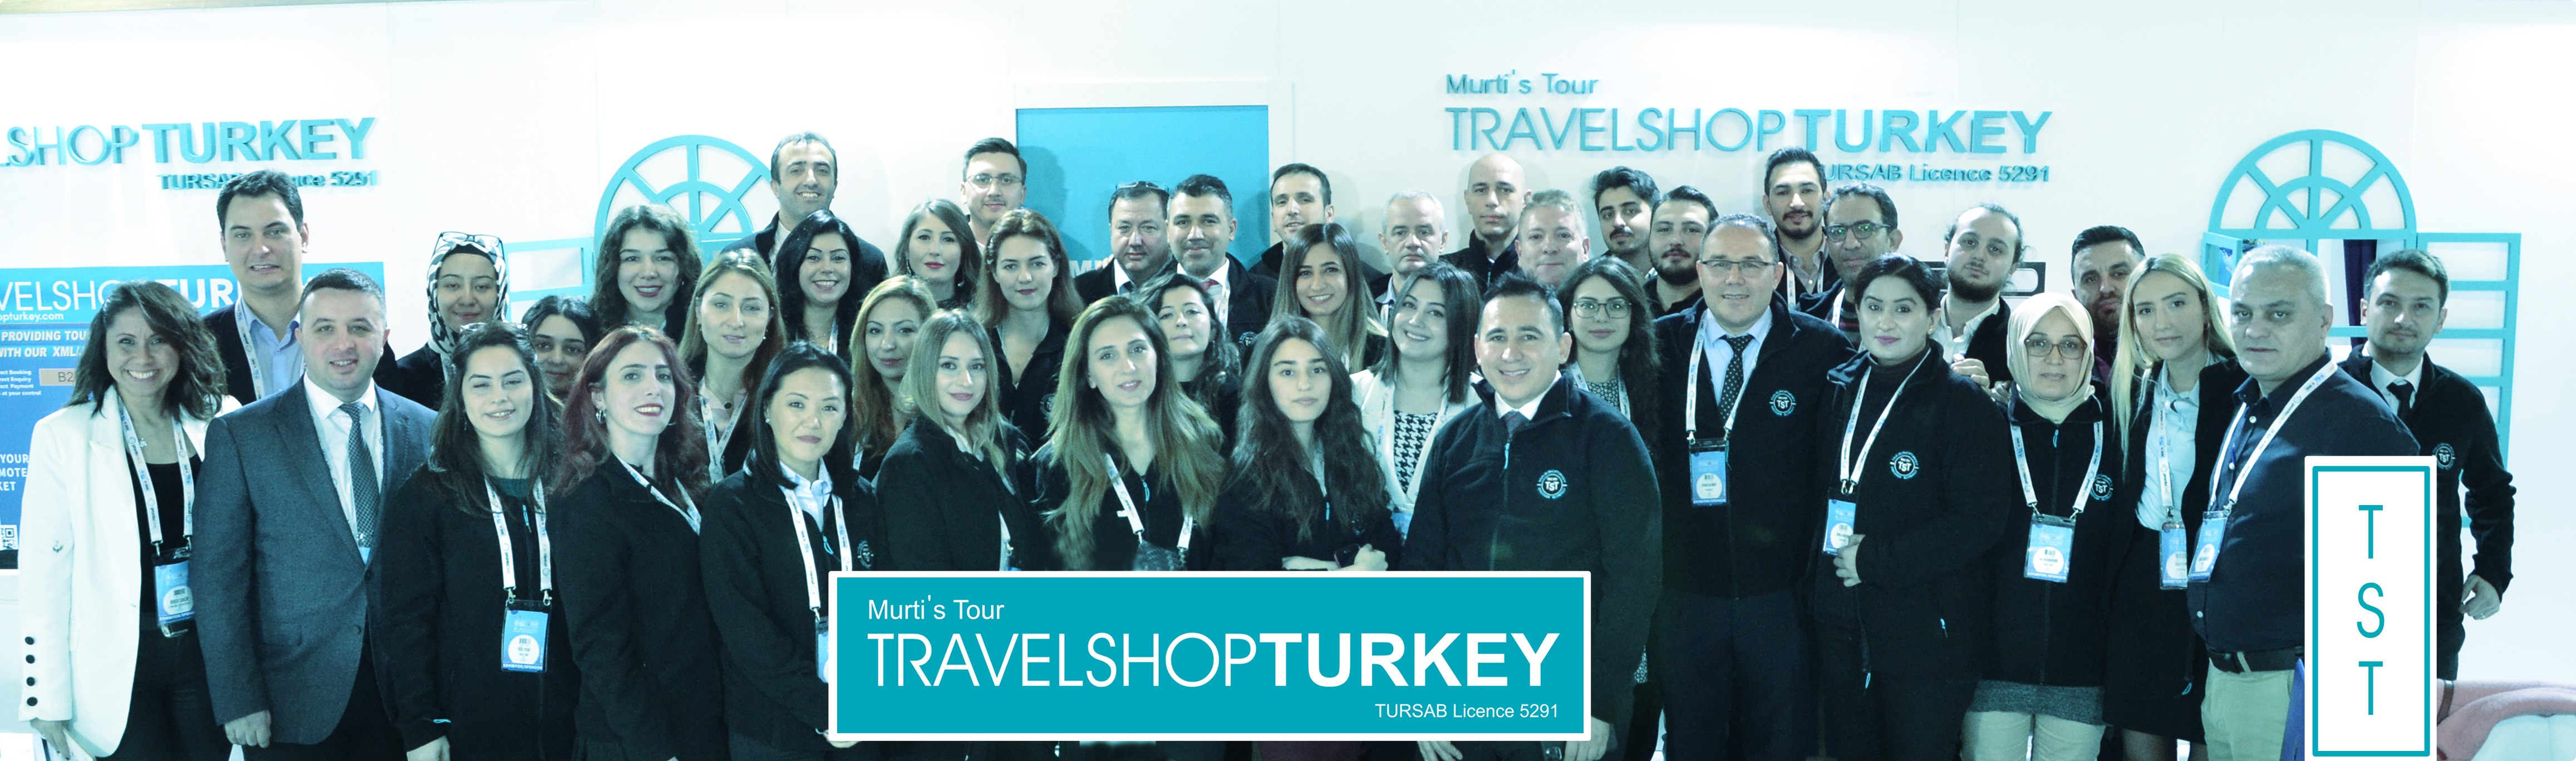 travel shop turkey about us